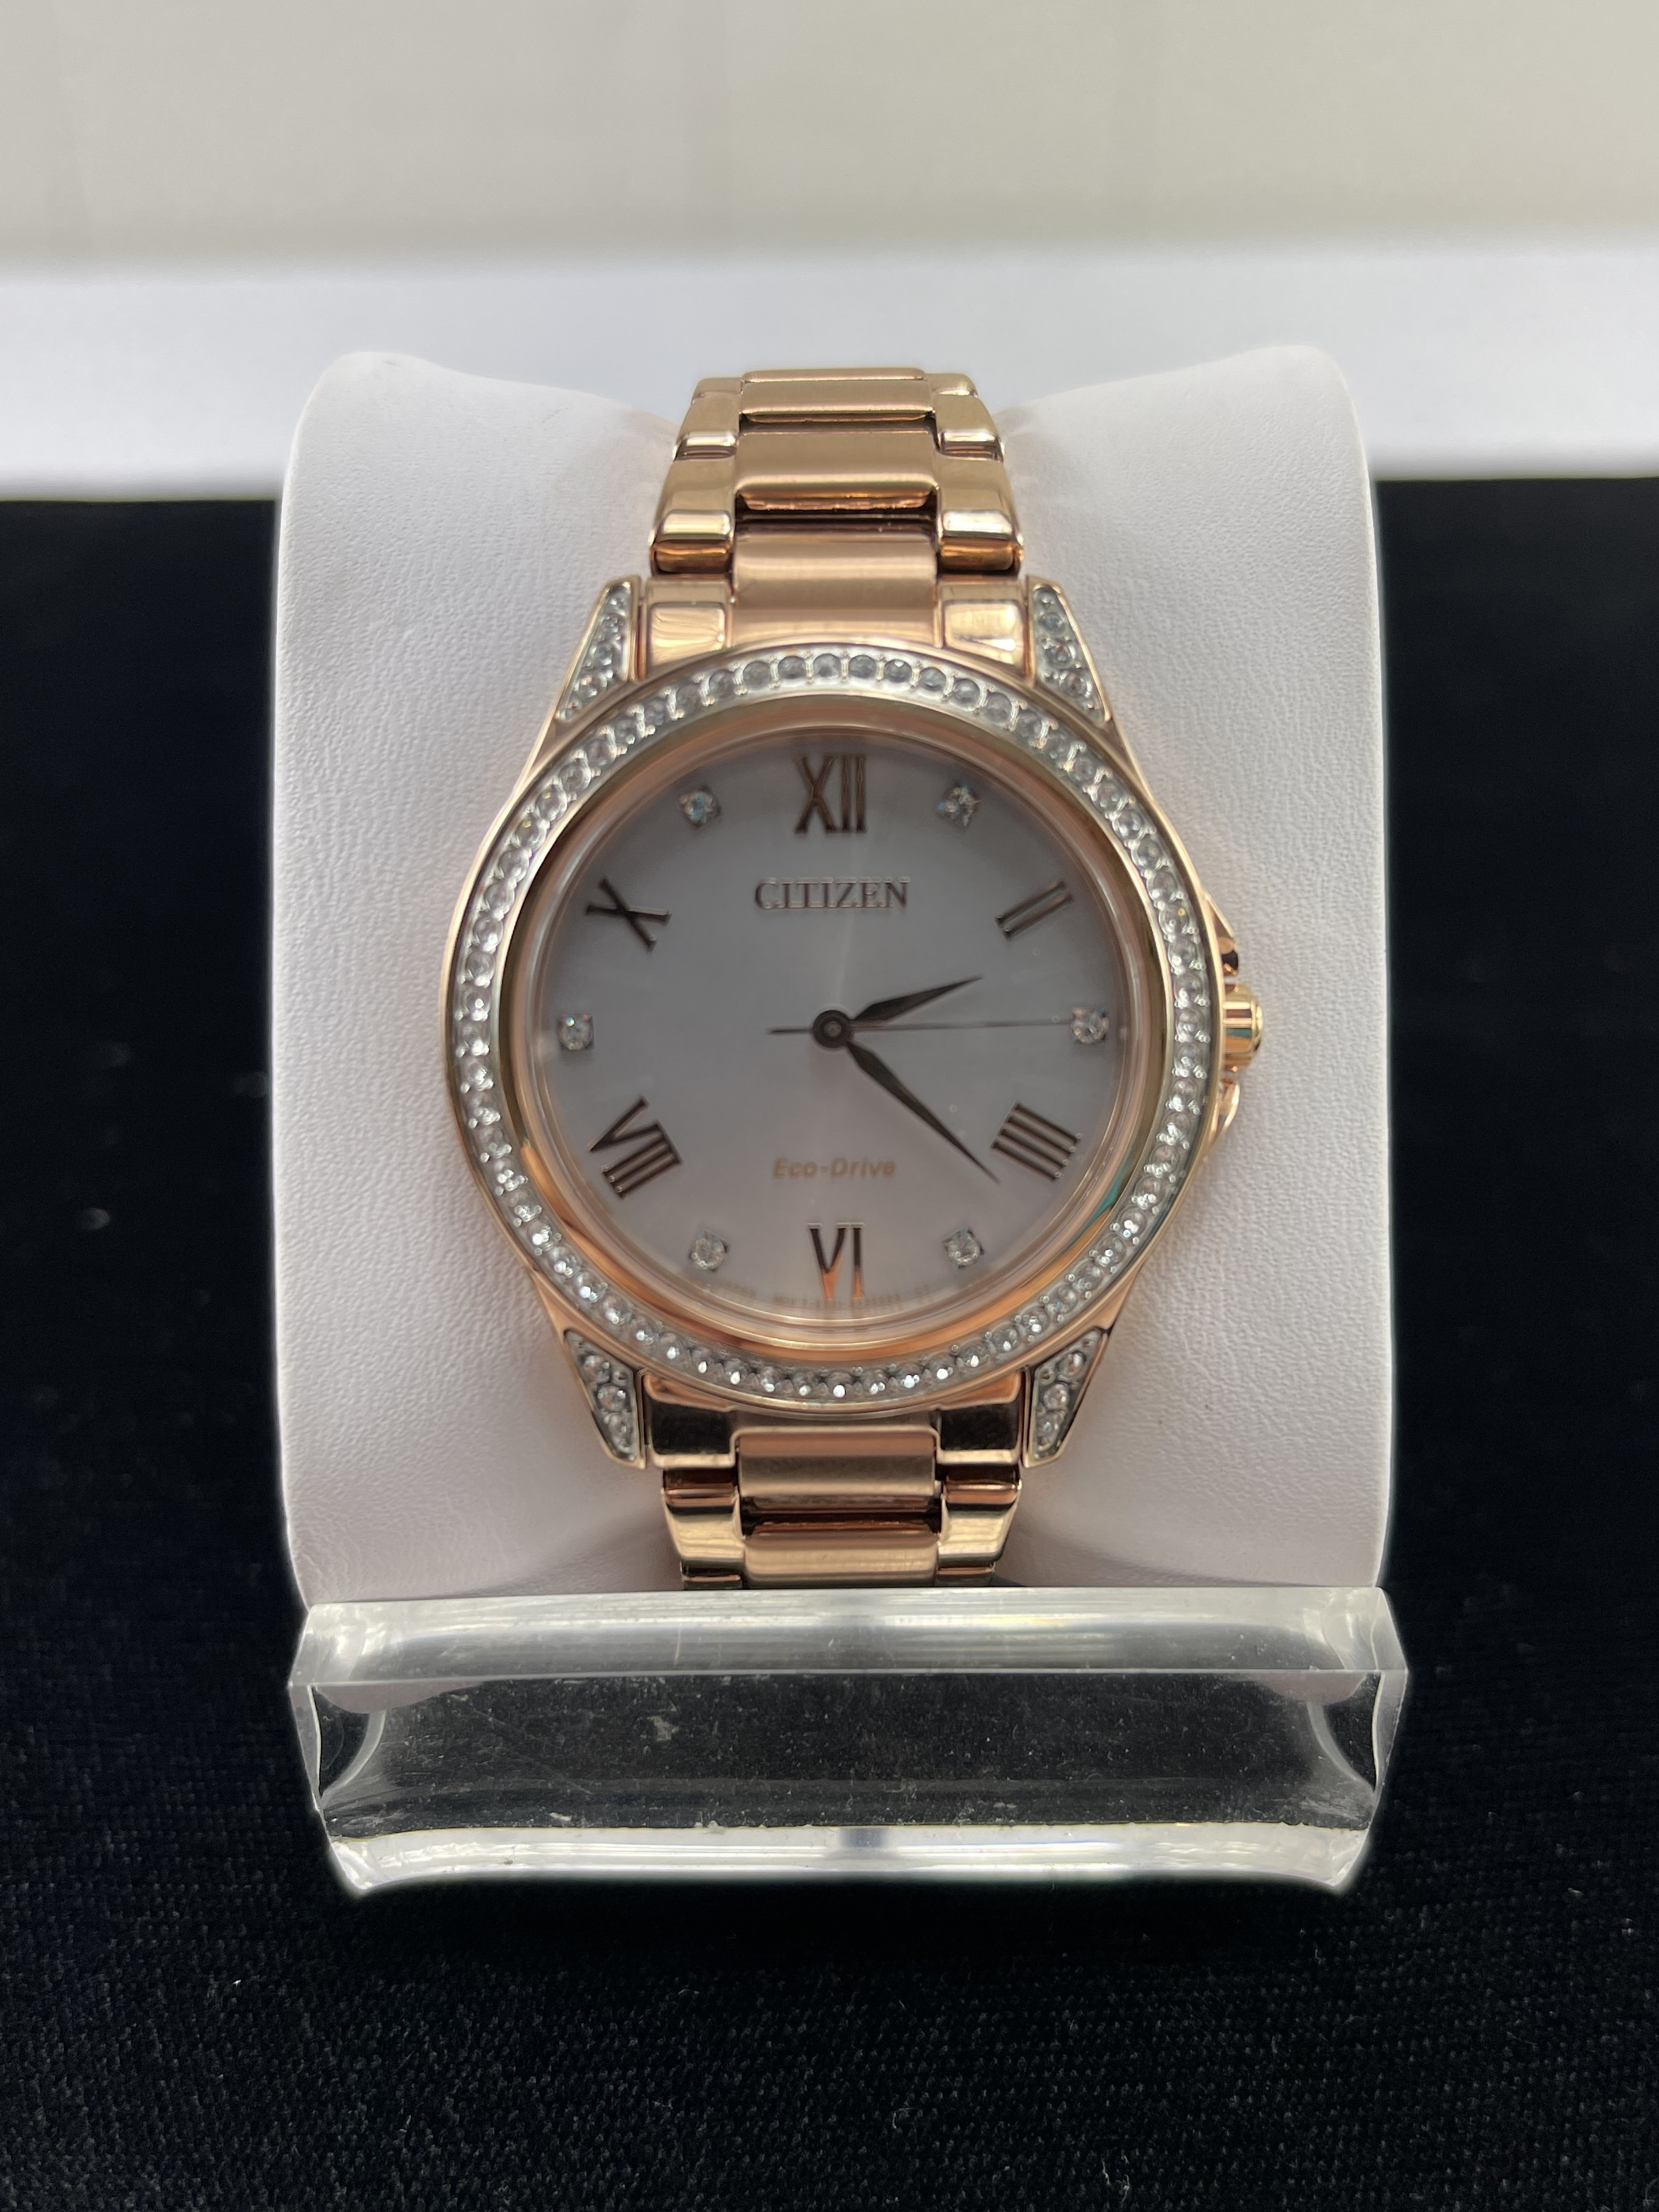 Citizen Women's Watch FE6113-57X Eco Drive 34mm Rose Gold Tone Stainless Steel